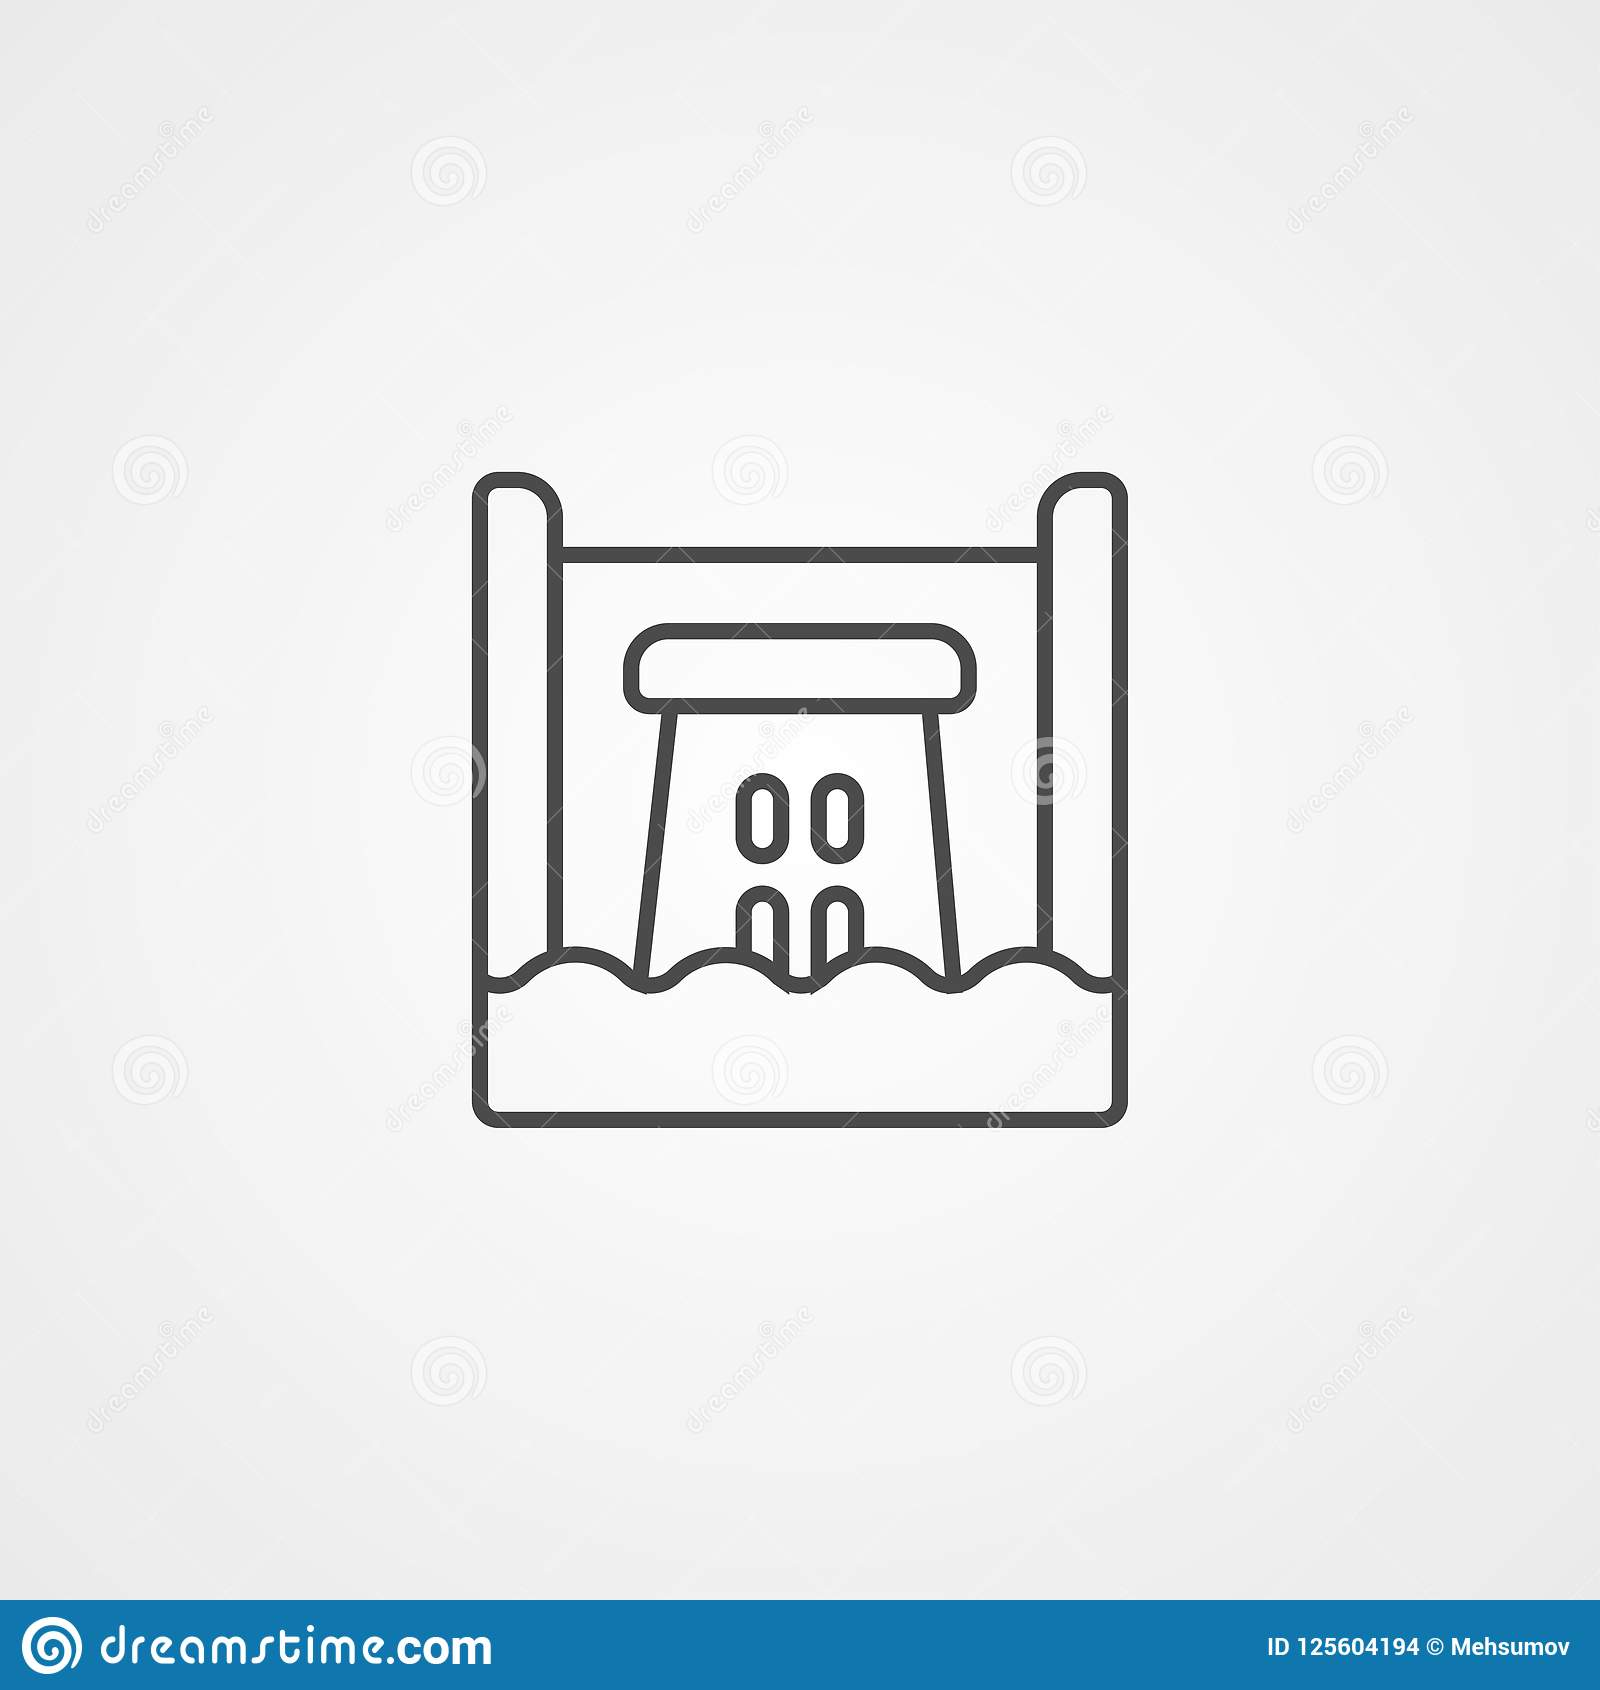 Hydro Power Vector Icon Sign Symbol Stock Vector Illustration Of